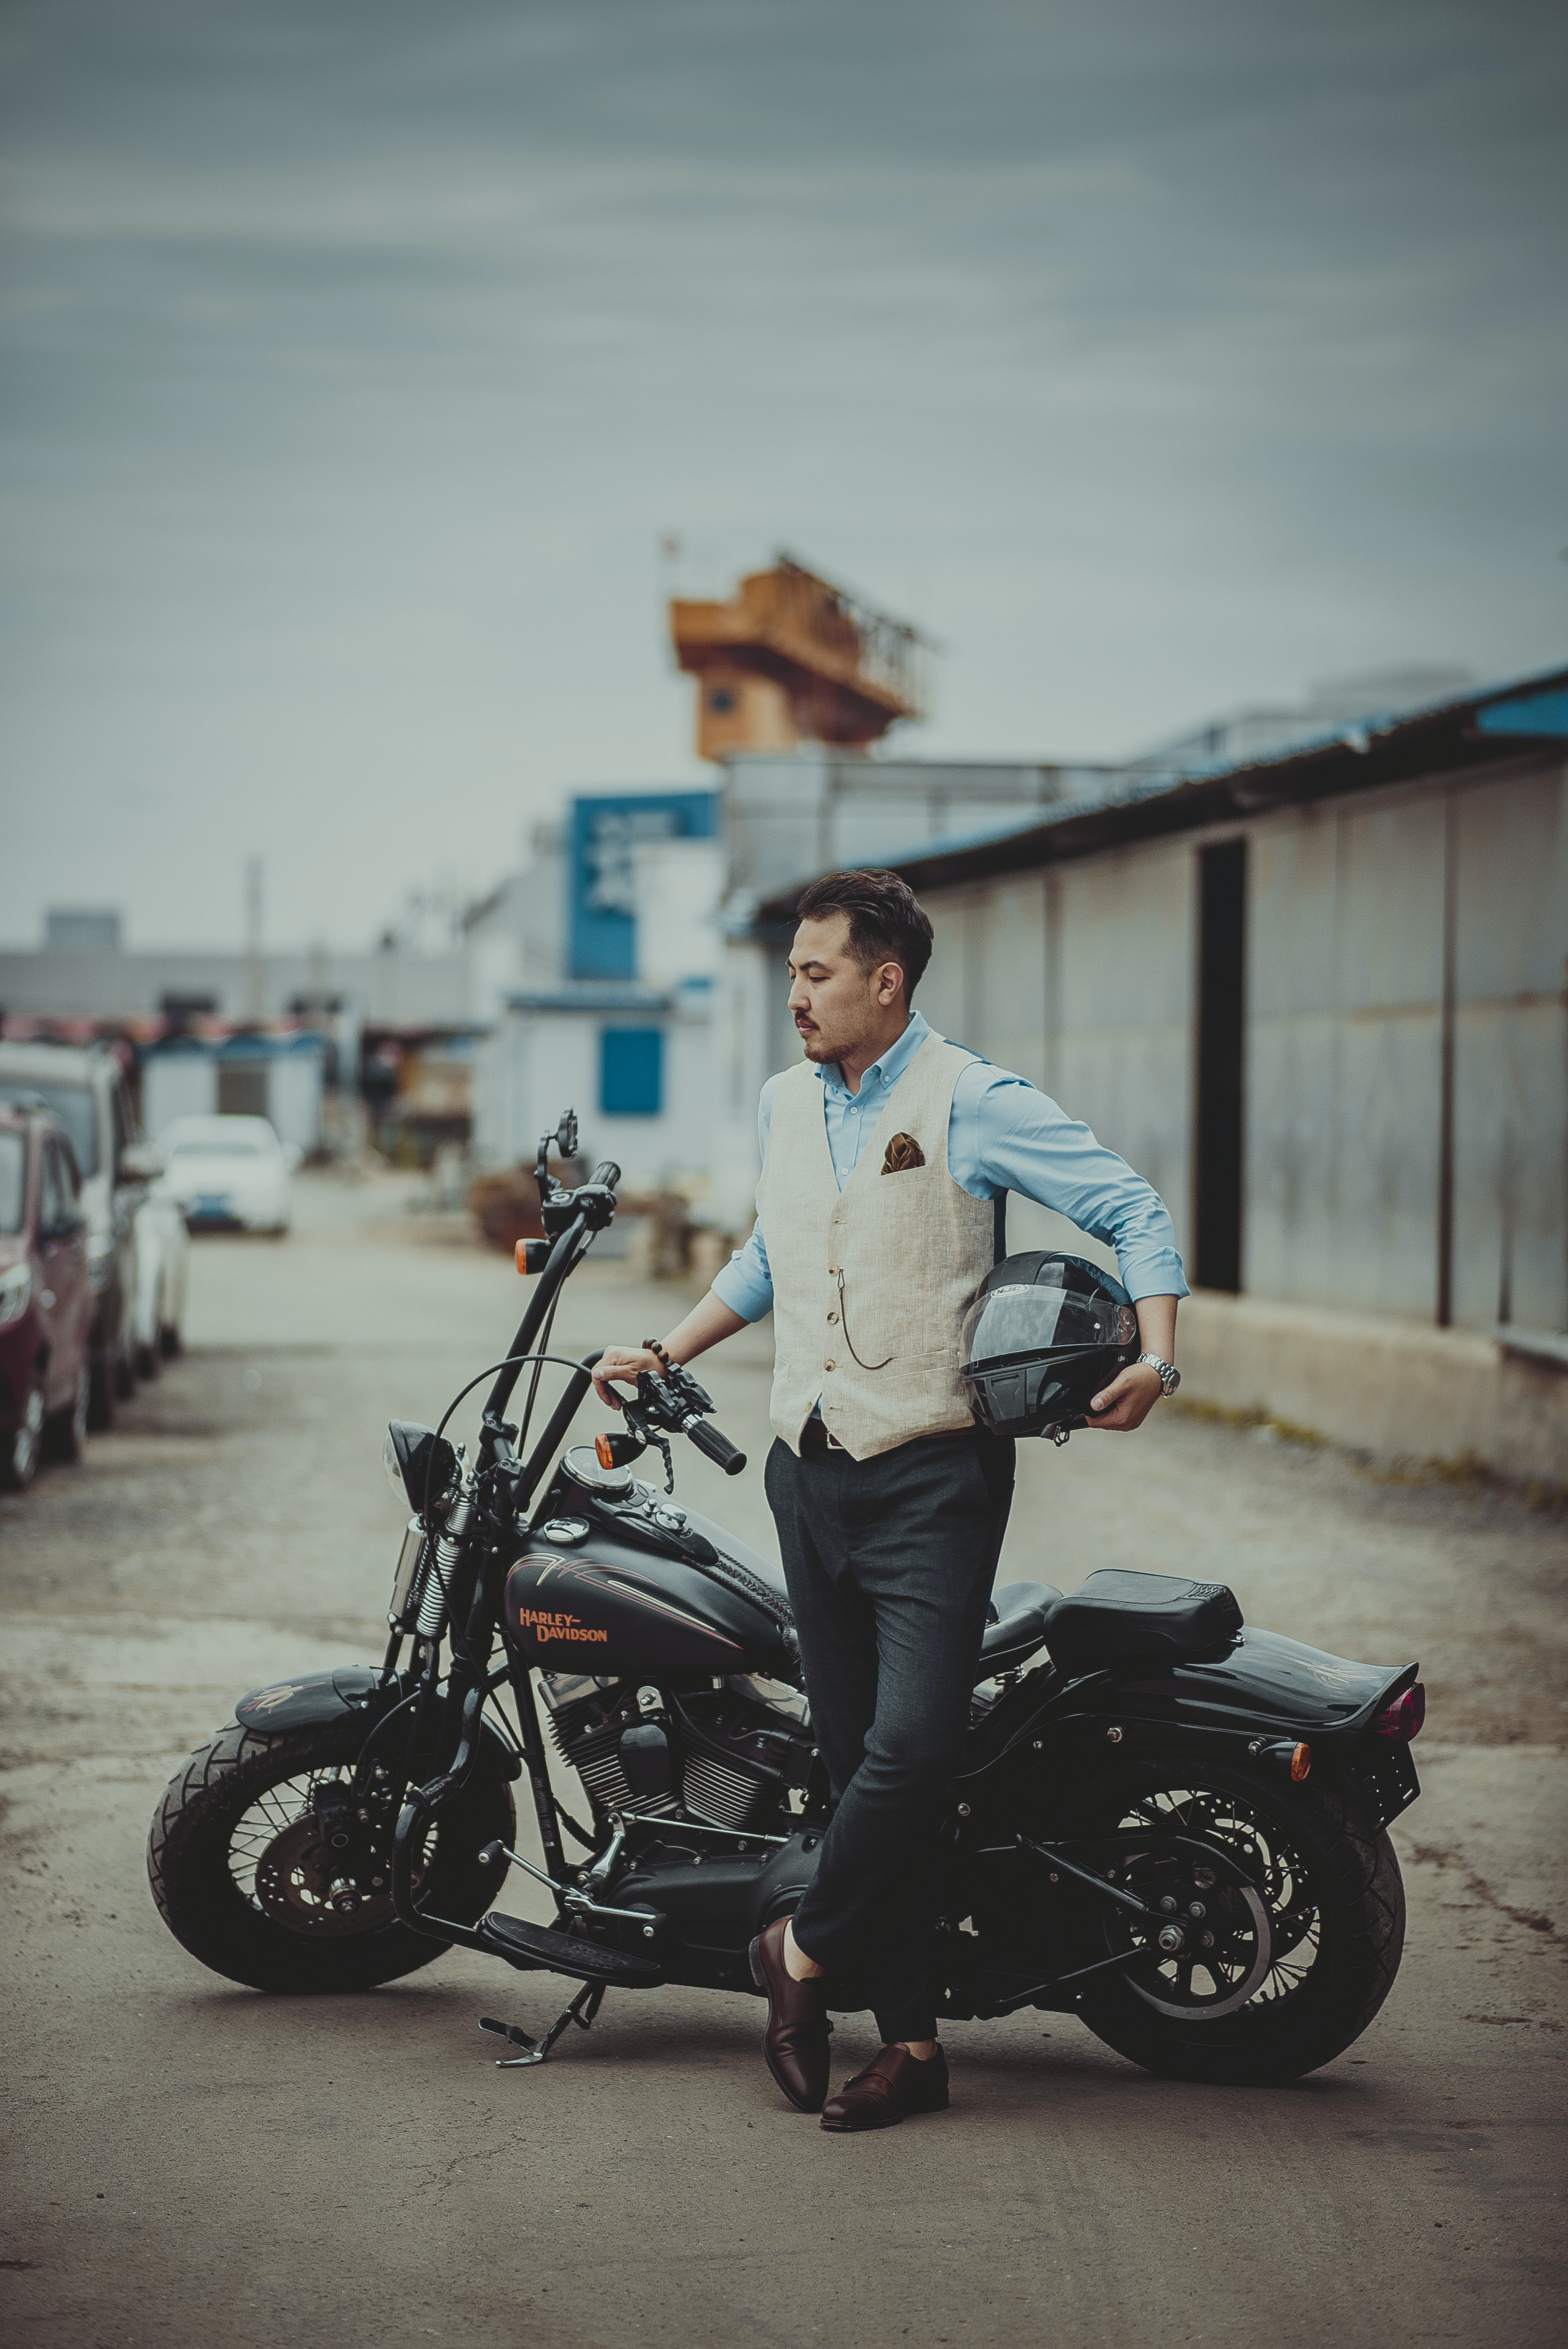 man holding helmet standing beside motorcycle